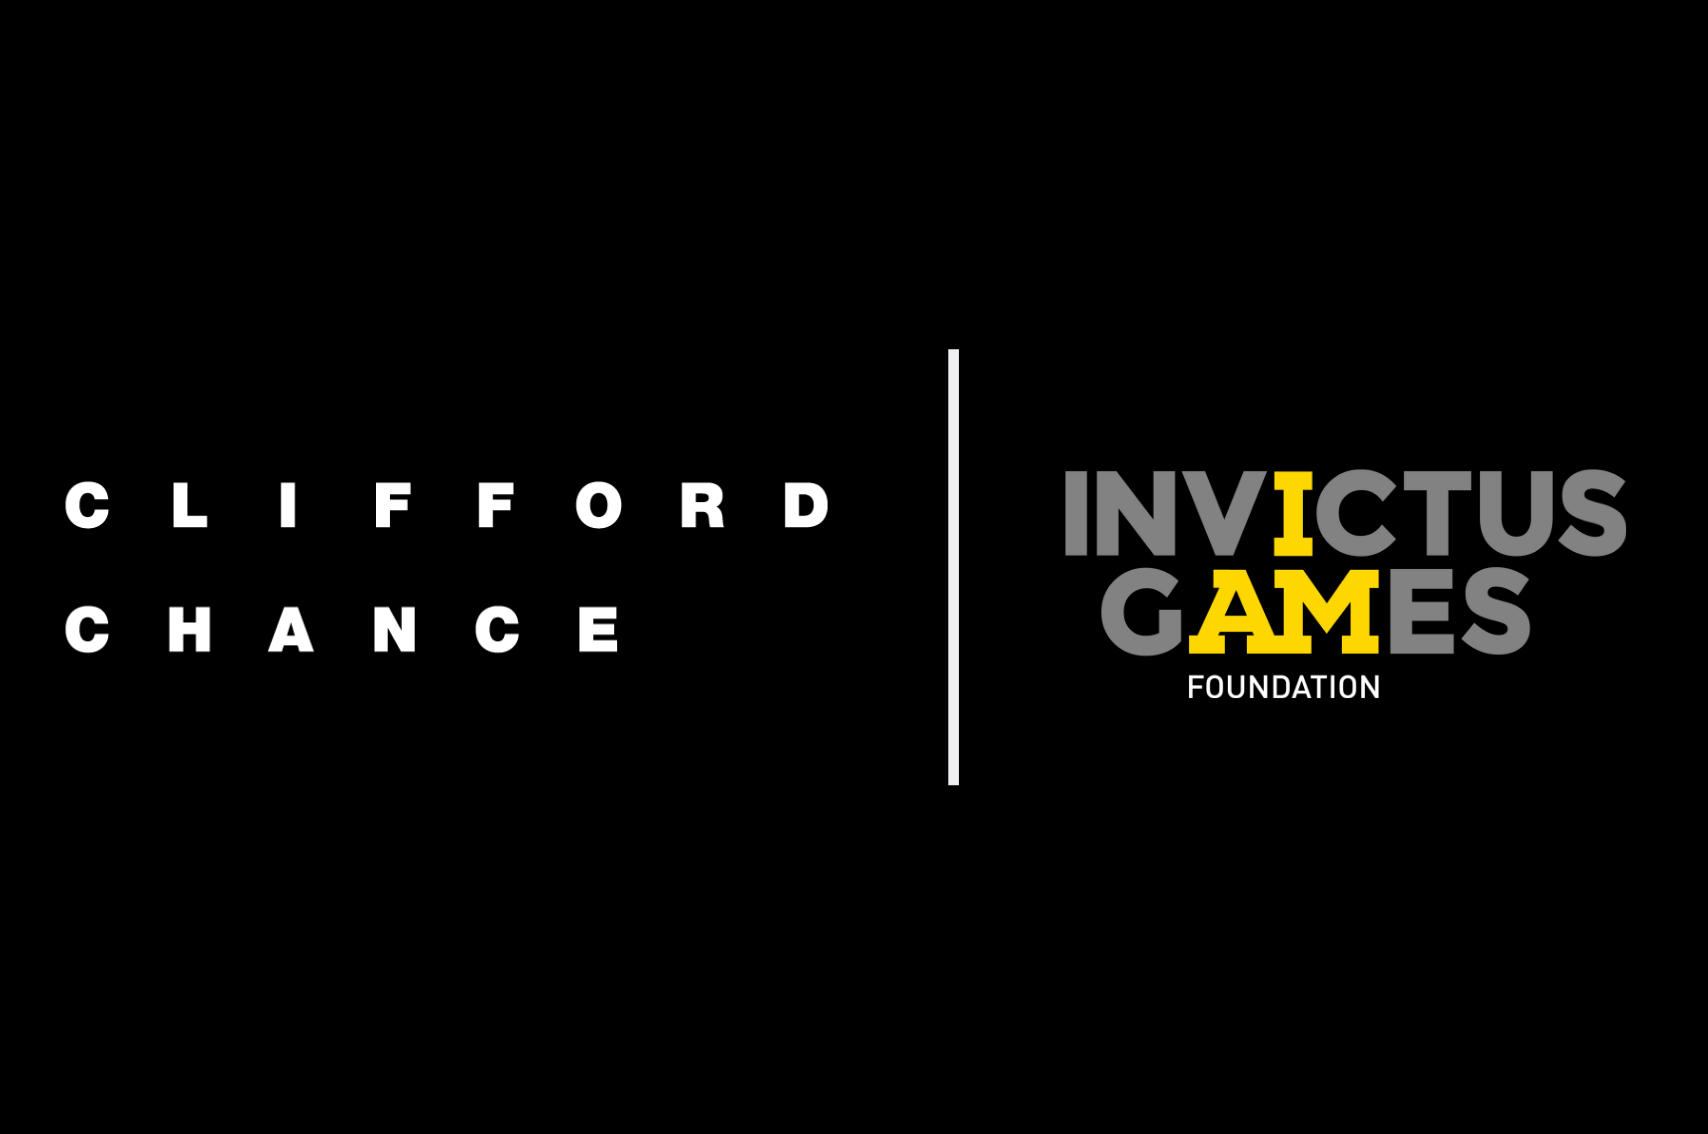 The Invictus Games Foundation appoints international law firm Clifford Chance